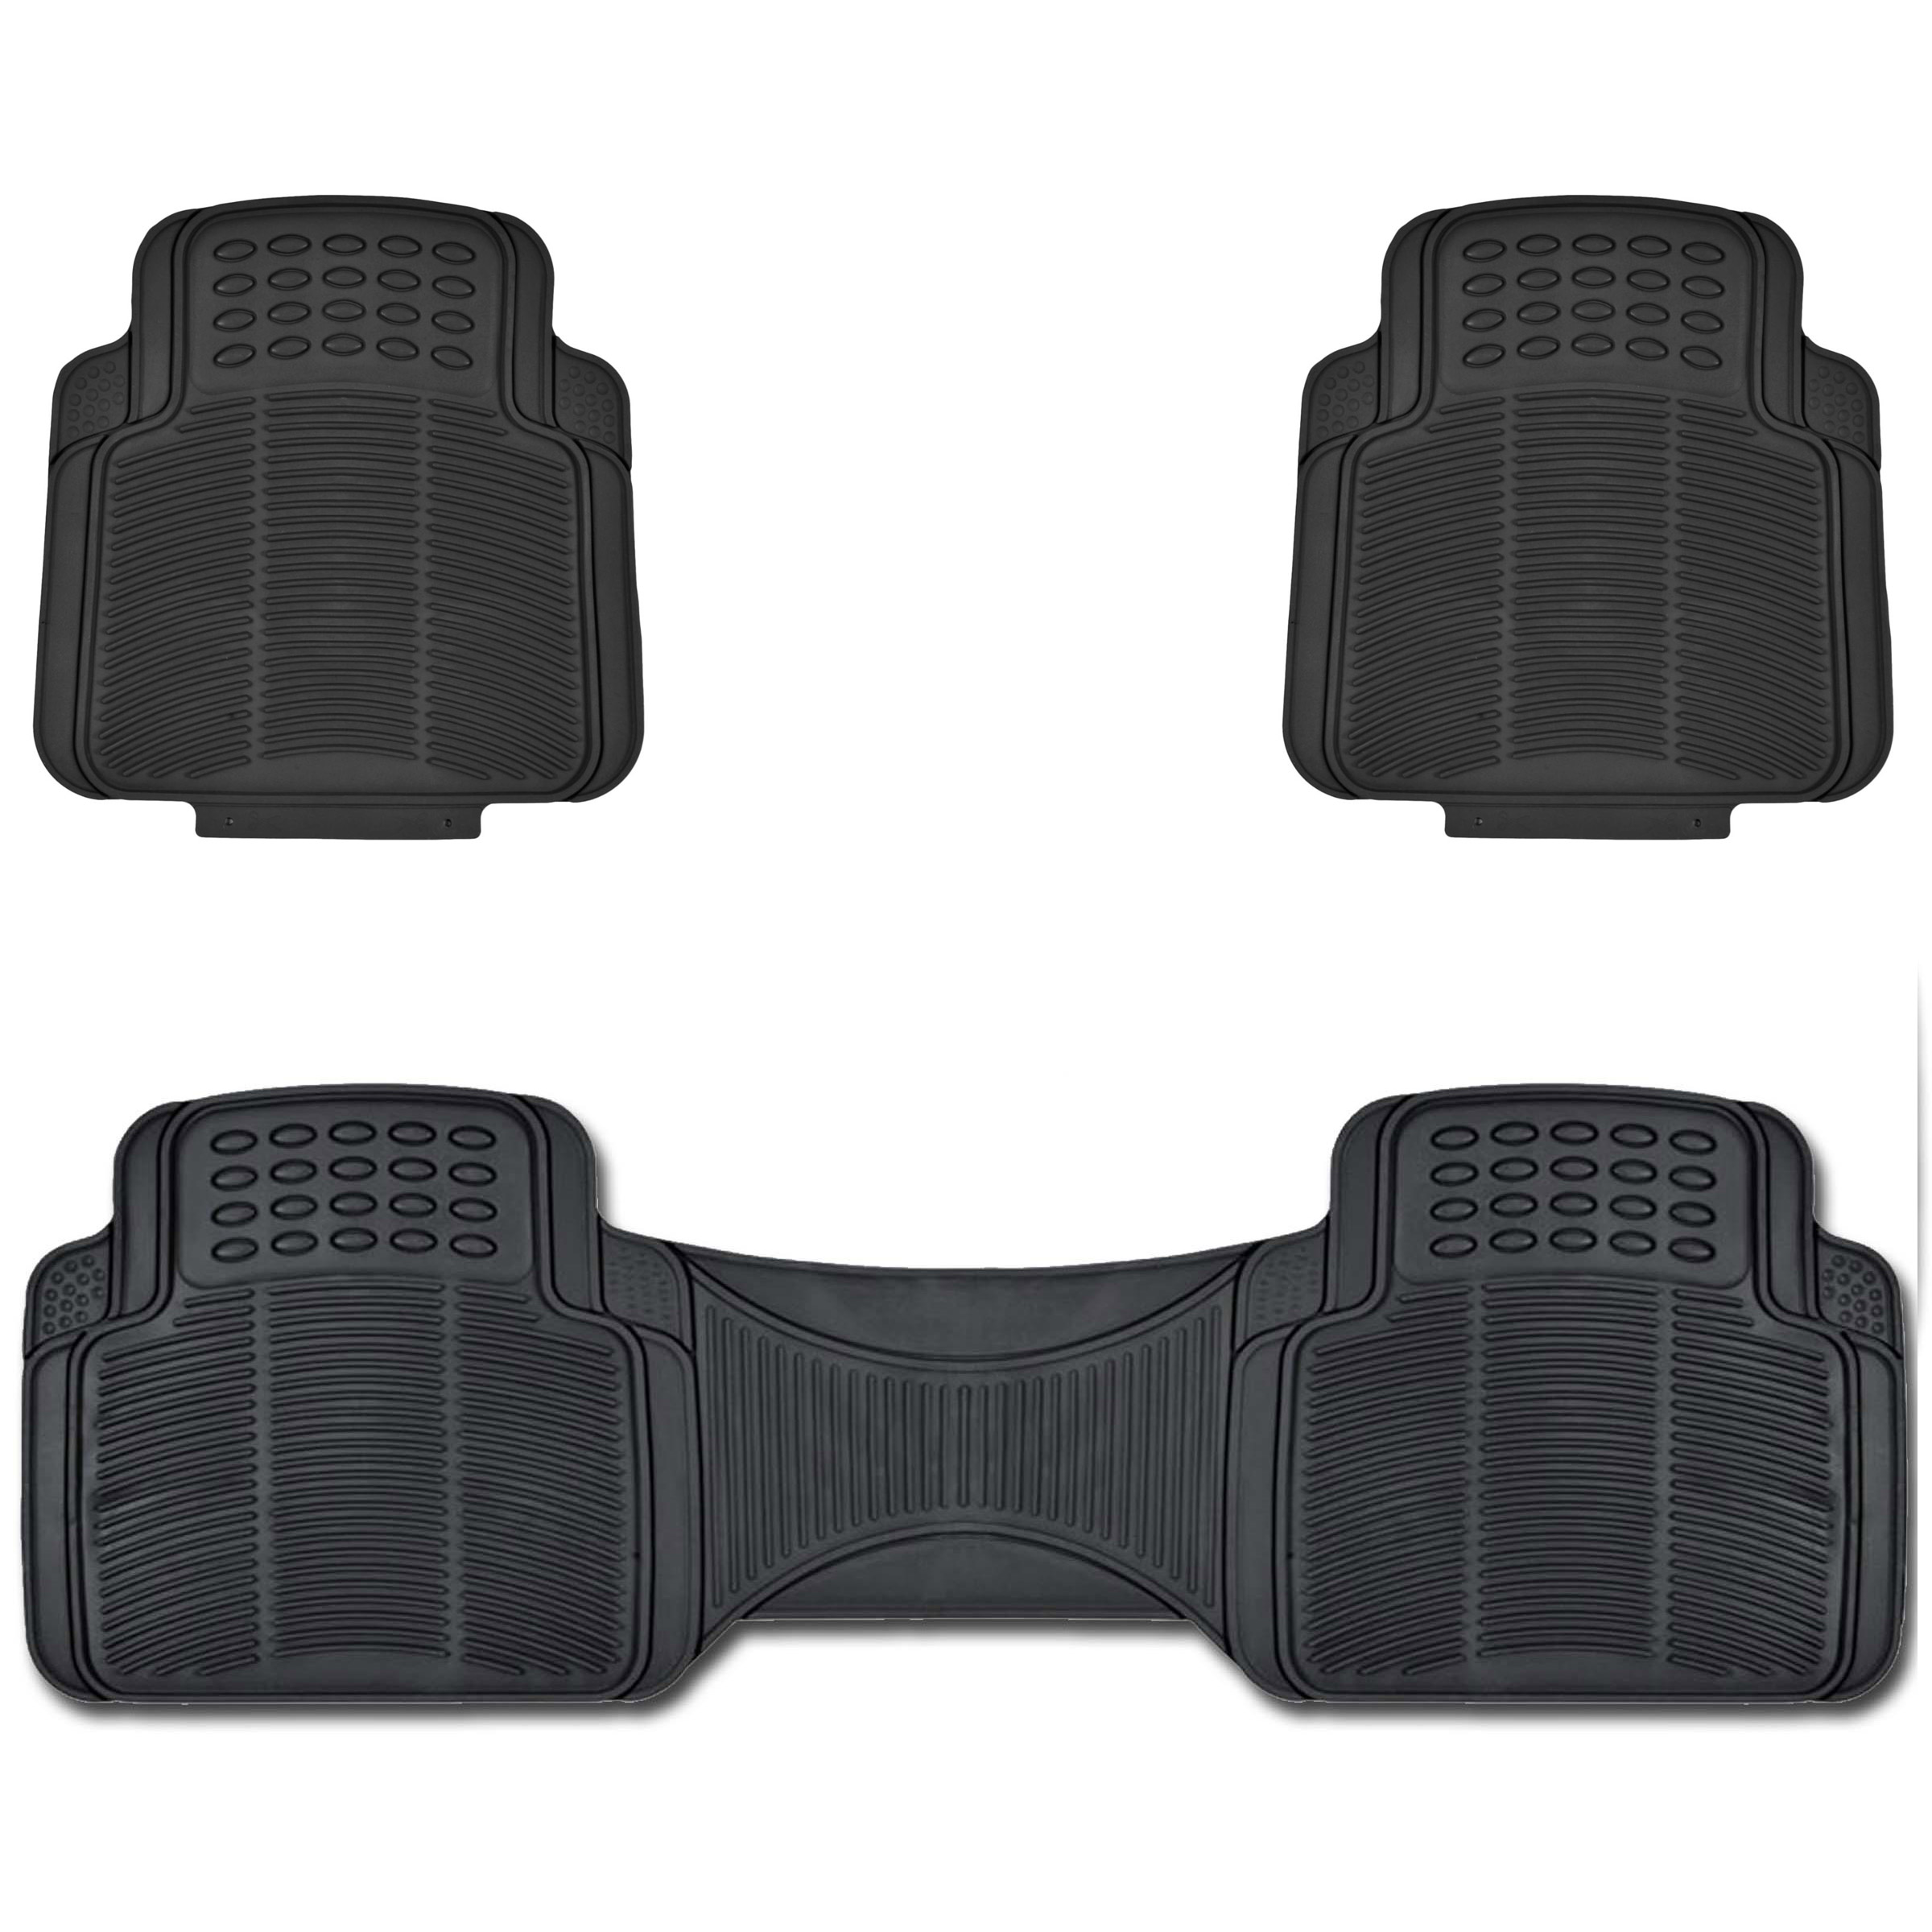 Car Utility Rubber Floor Mats Trimmable To Fit Easy Wash